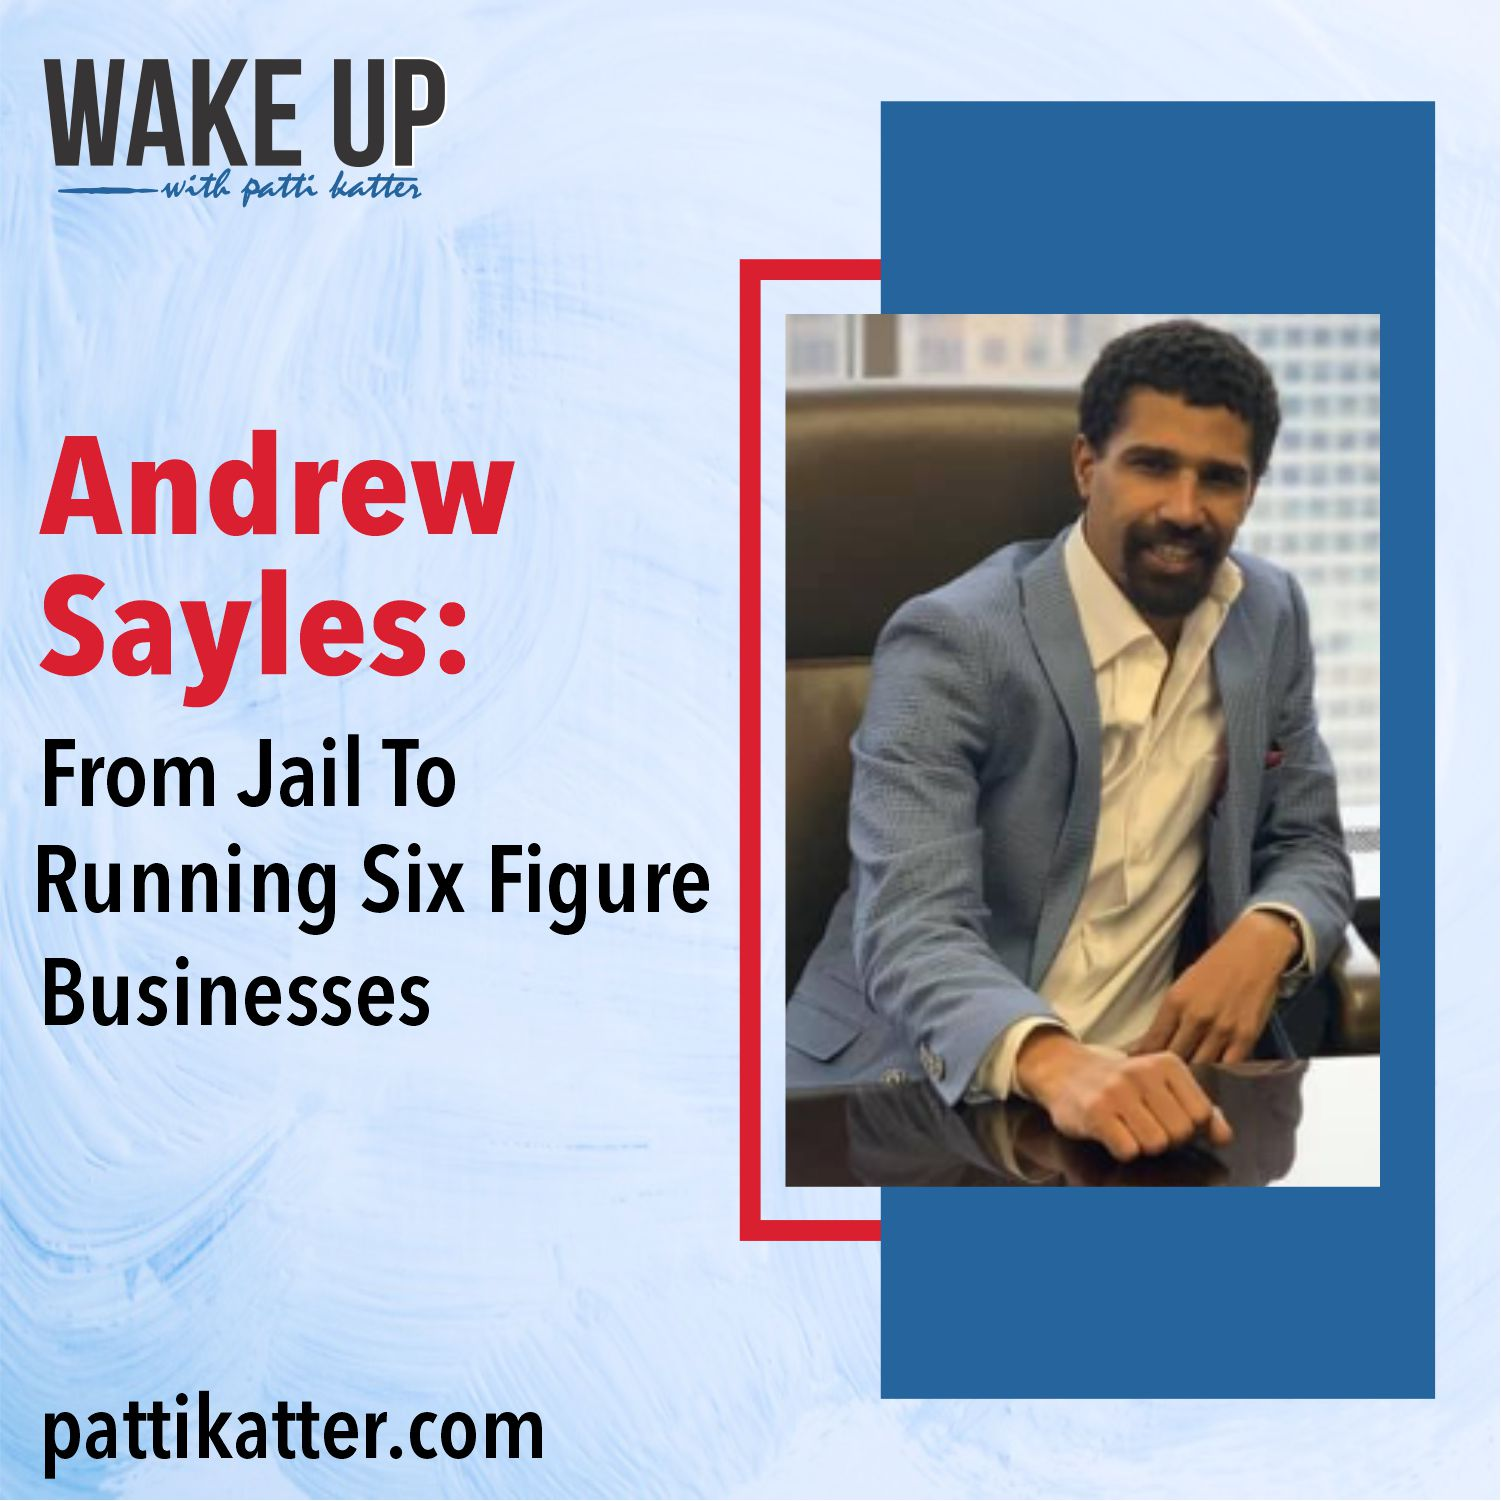 Andrew Sayles: From Jail To Running Six Figure Businesses